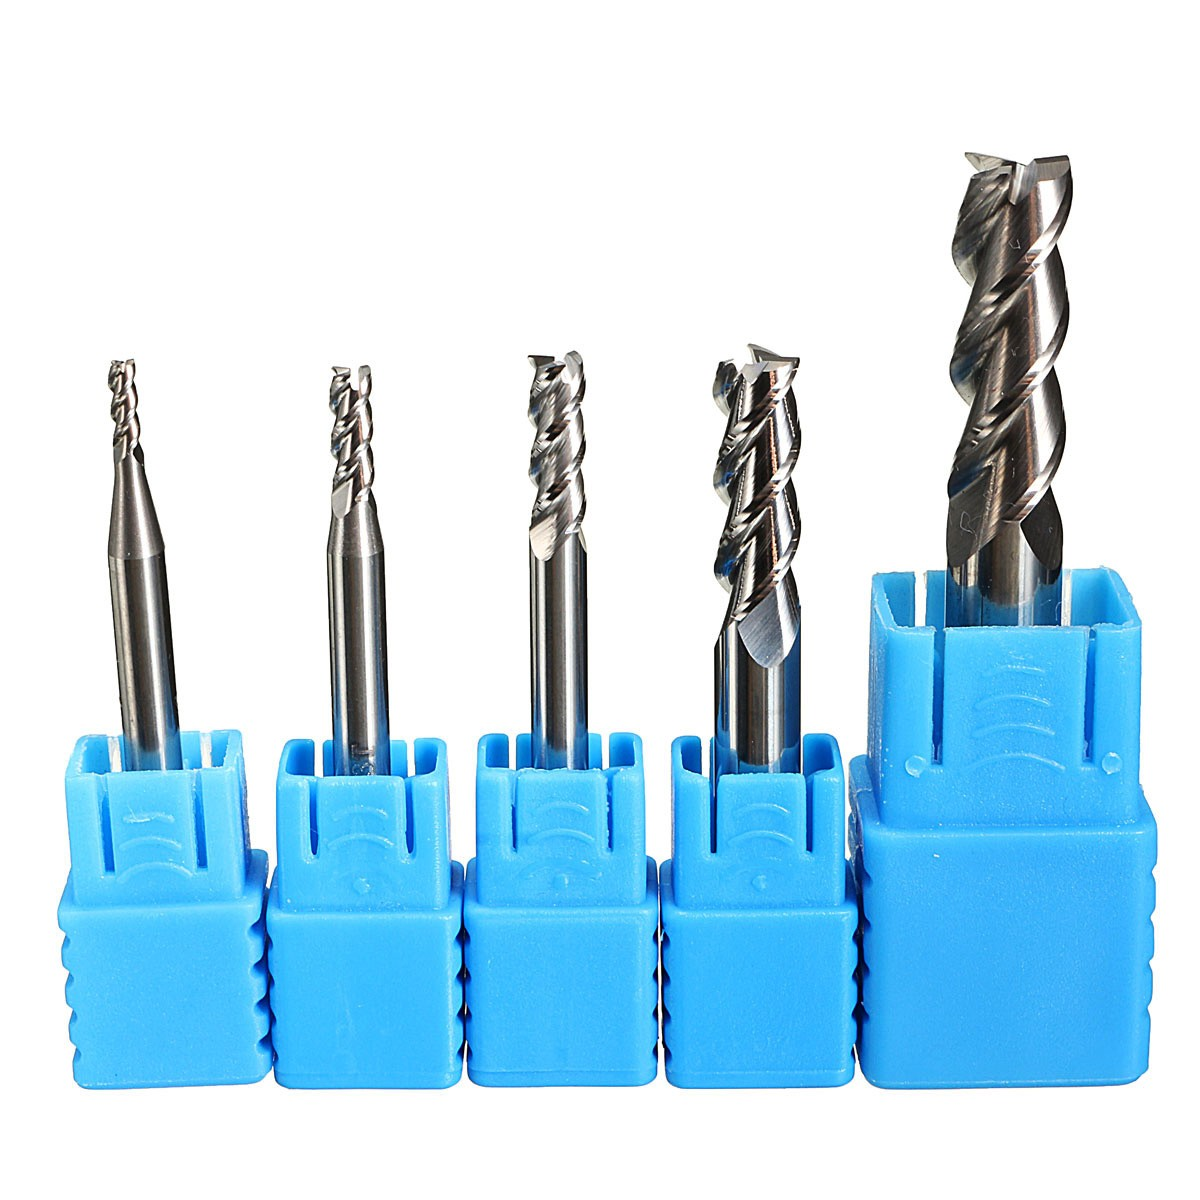 5Pcs/set 3 Flute 2 3 4 6 8mm Aluminium End Mill Cutter Tungsten Carbide  Printed Cutter For CNC Milling Cutter 10pcs box 1 8 inch 0 8 3 17mm pcb engraving cutter rotary cnc end mill 0 8 1 0 1 2 1 4 1 6 1 8 2 0 2 2 2 4 3 17mm